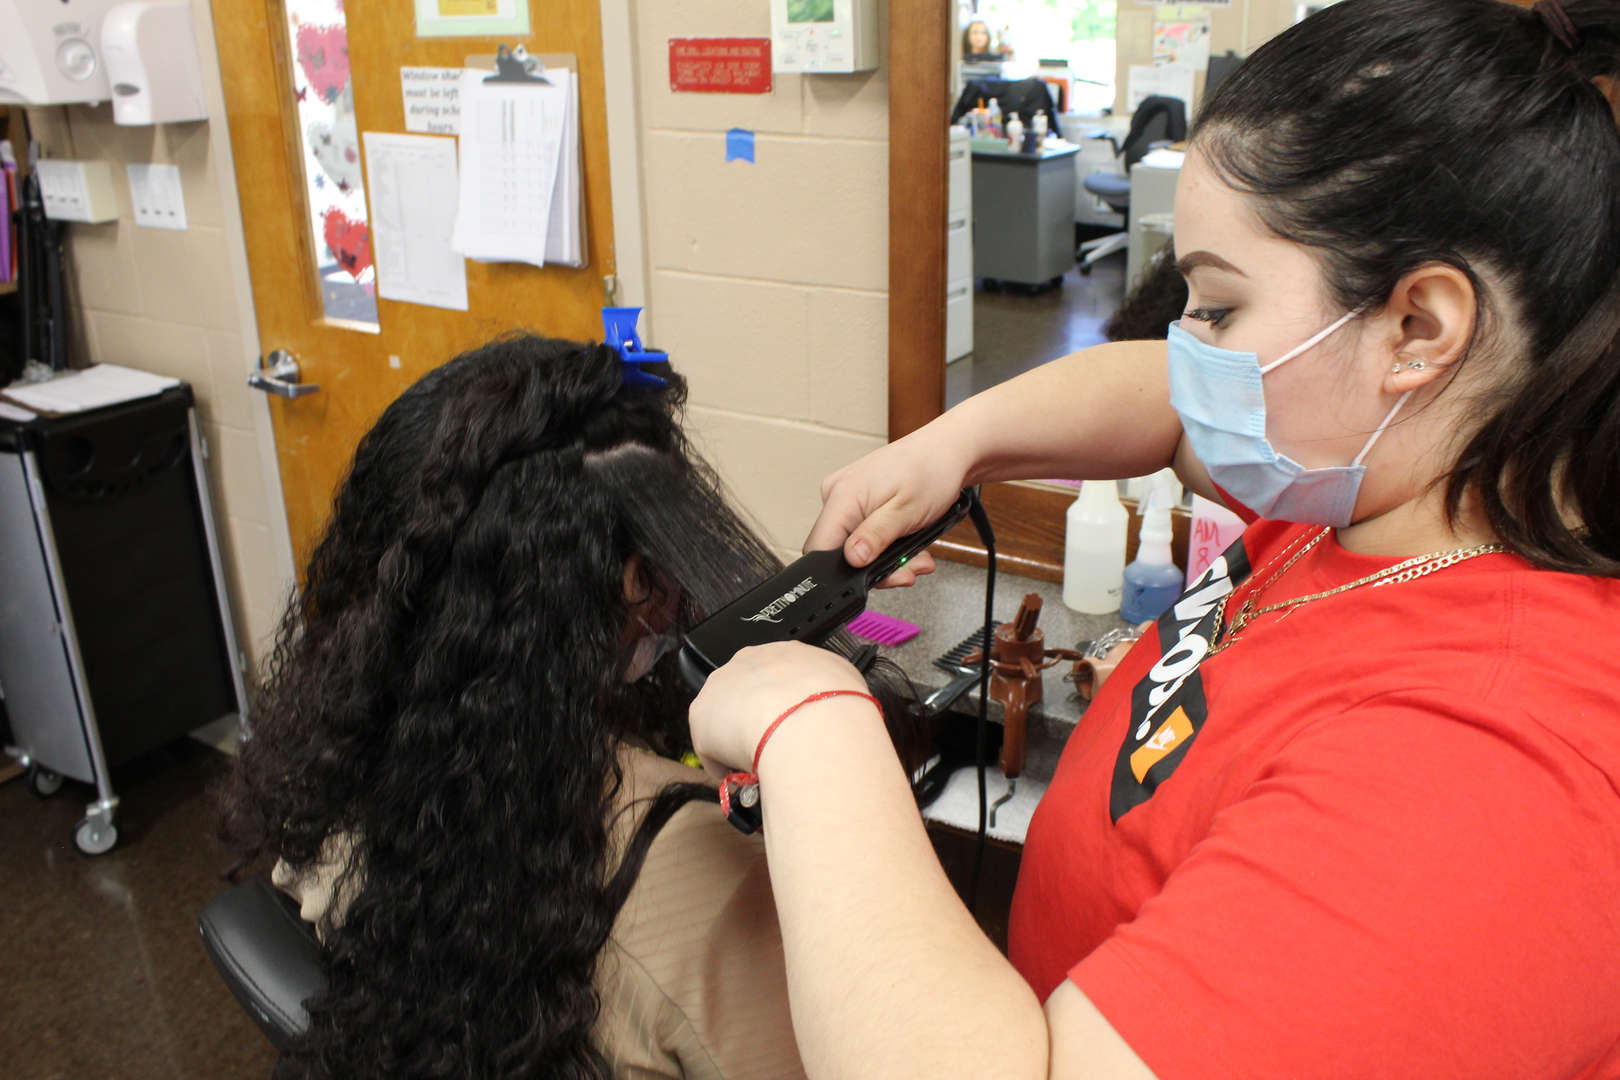 Girl straightens hair of another girl using a flatiron tool